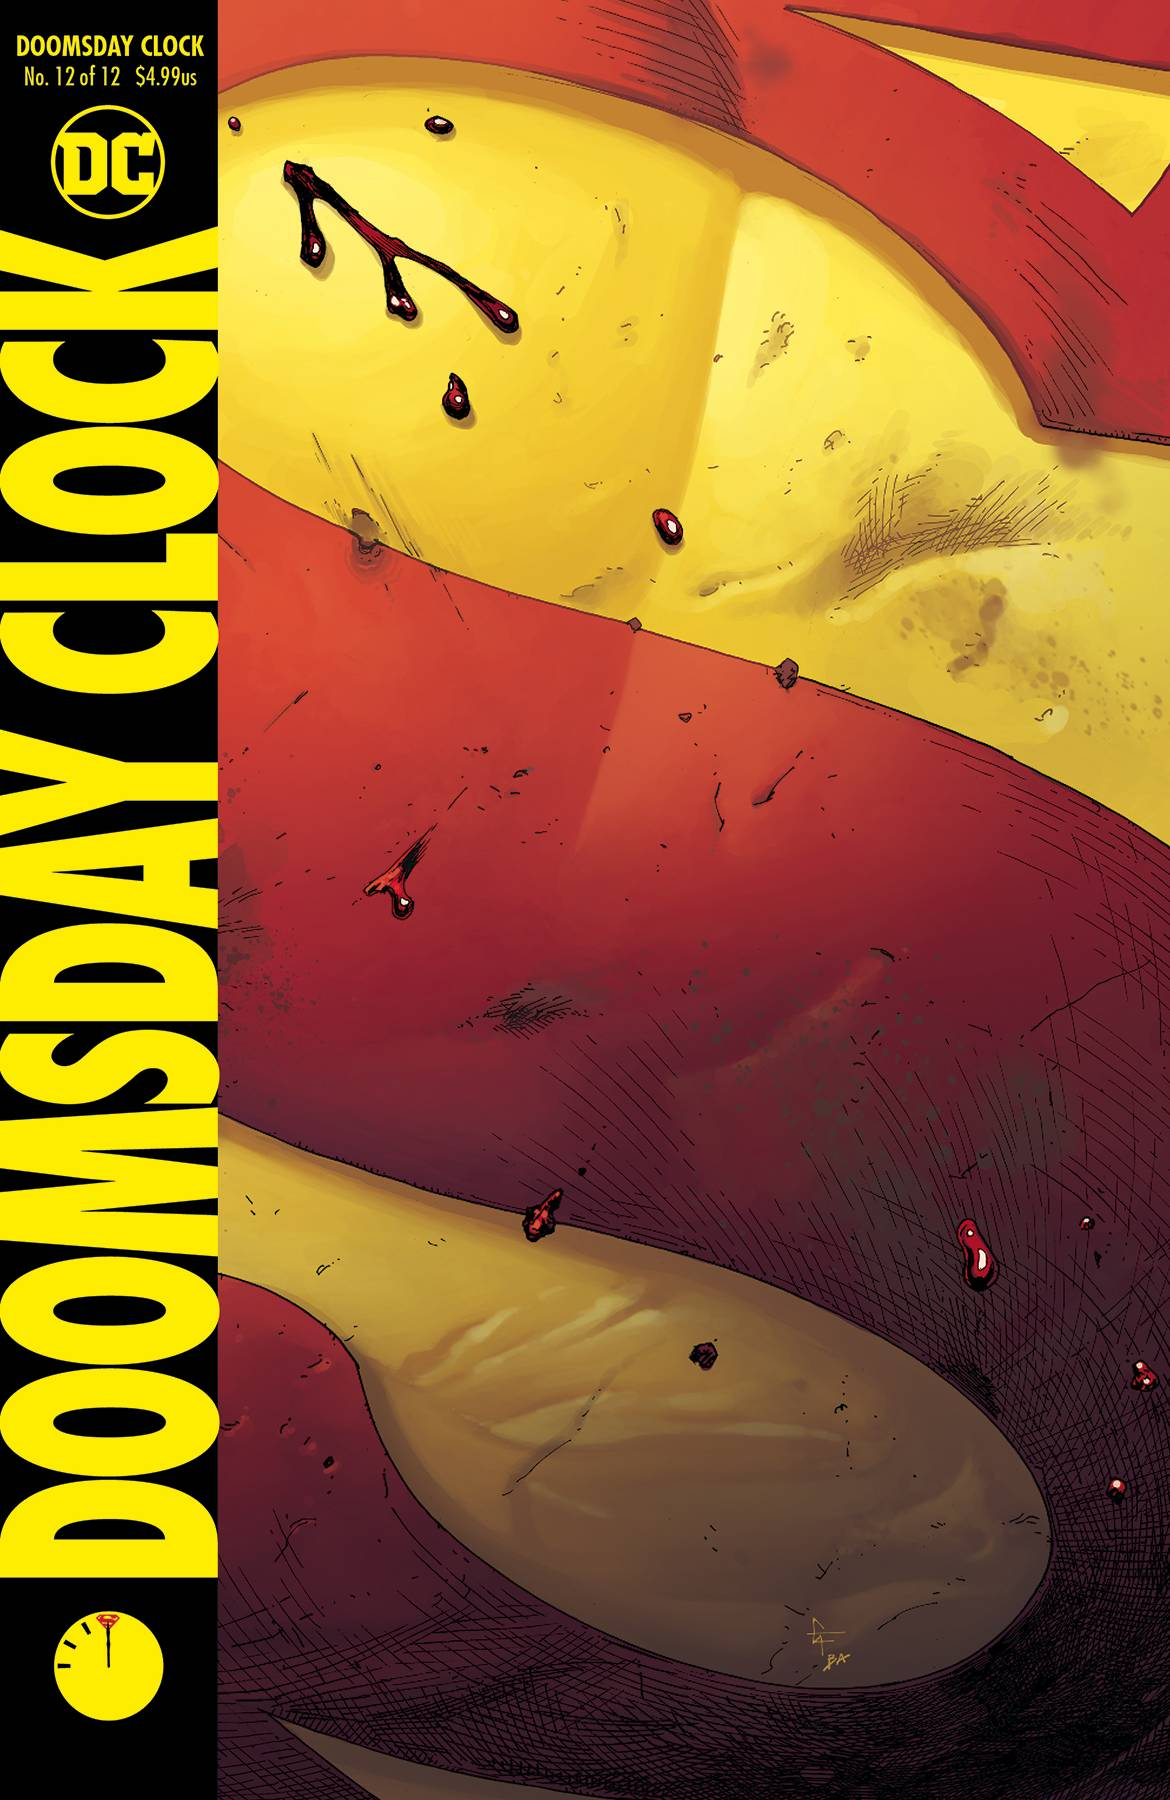 DOOMSDAY CLOCK #12 (OF 12) <span class=ttlyear>2019</span>